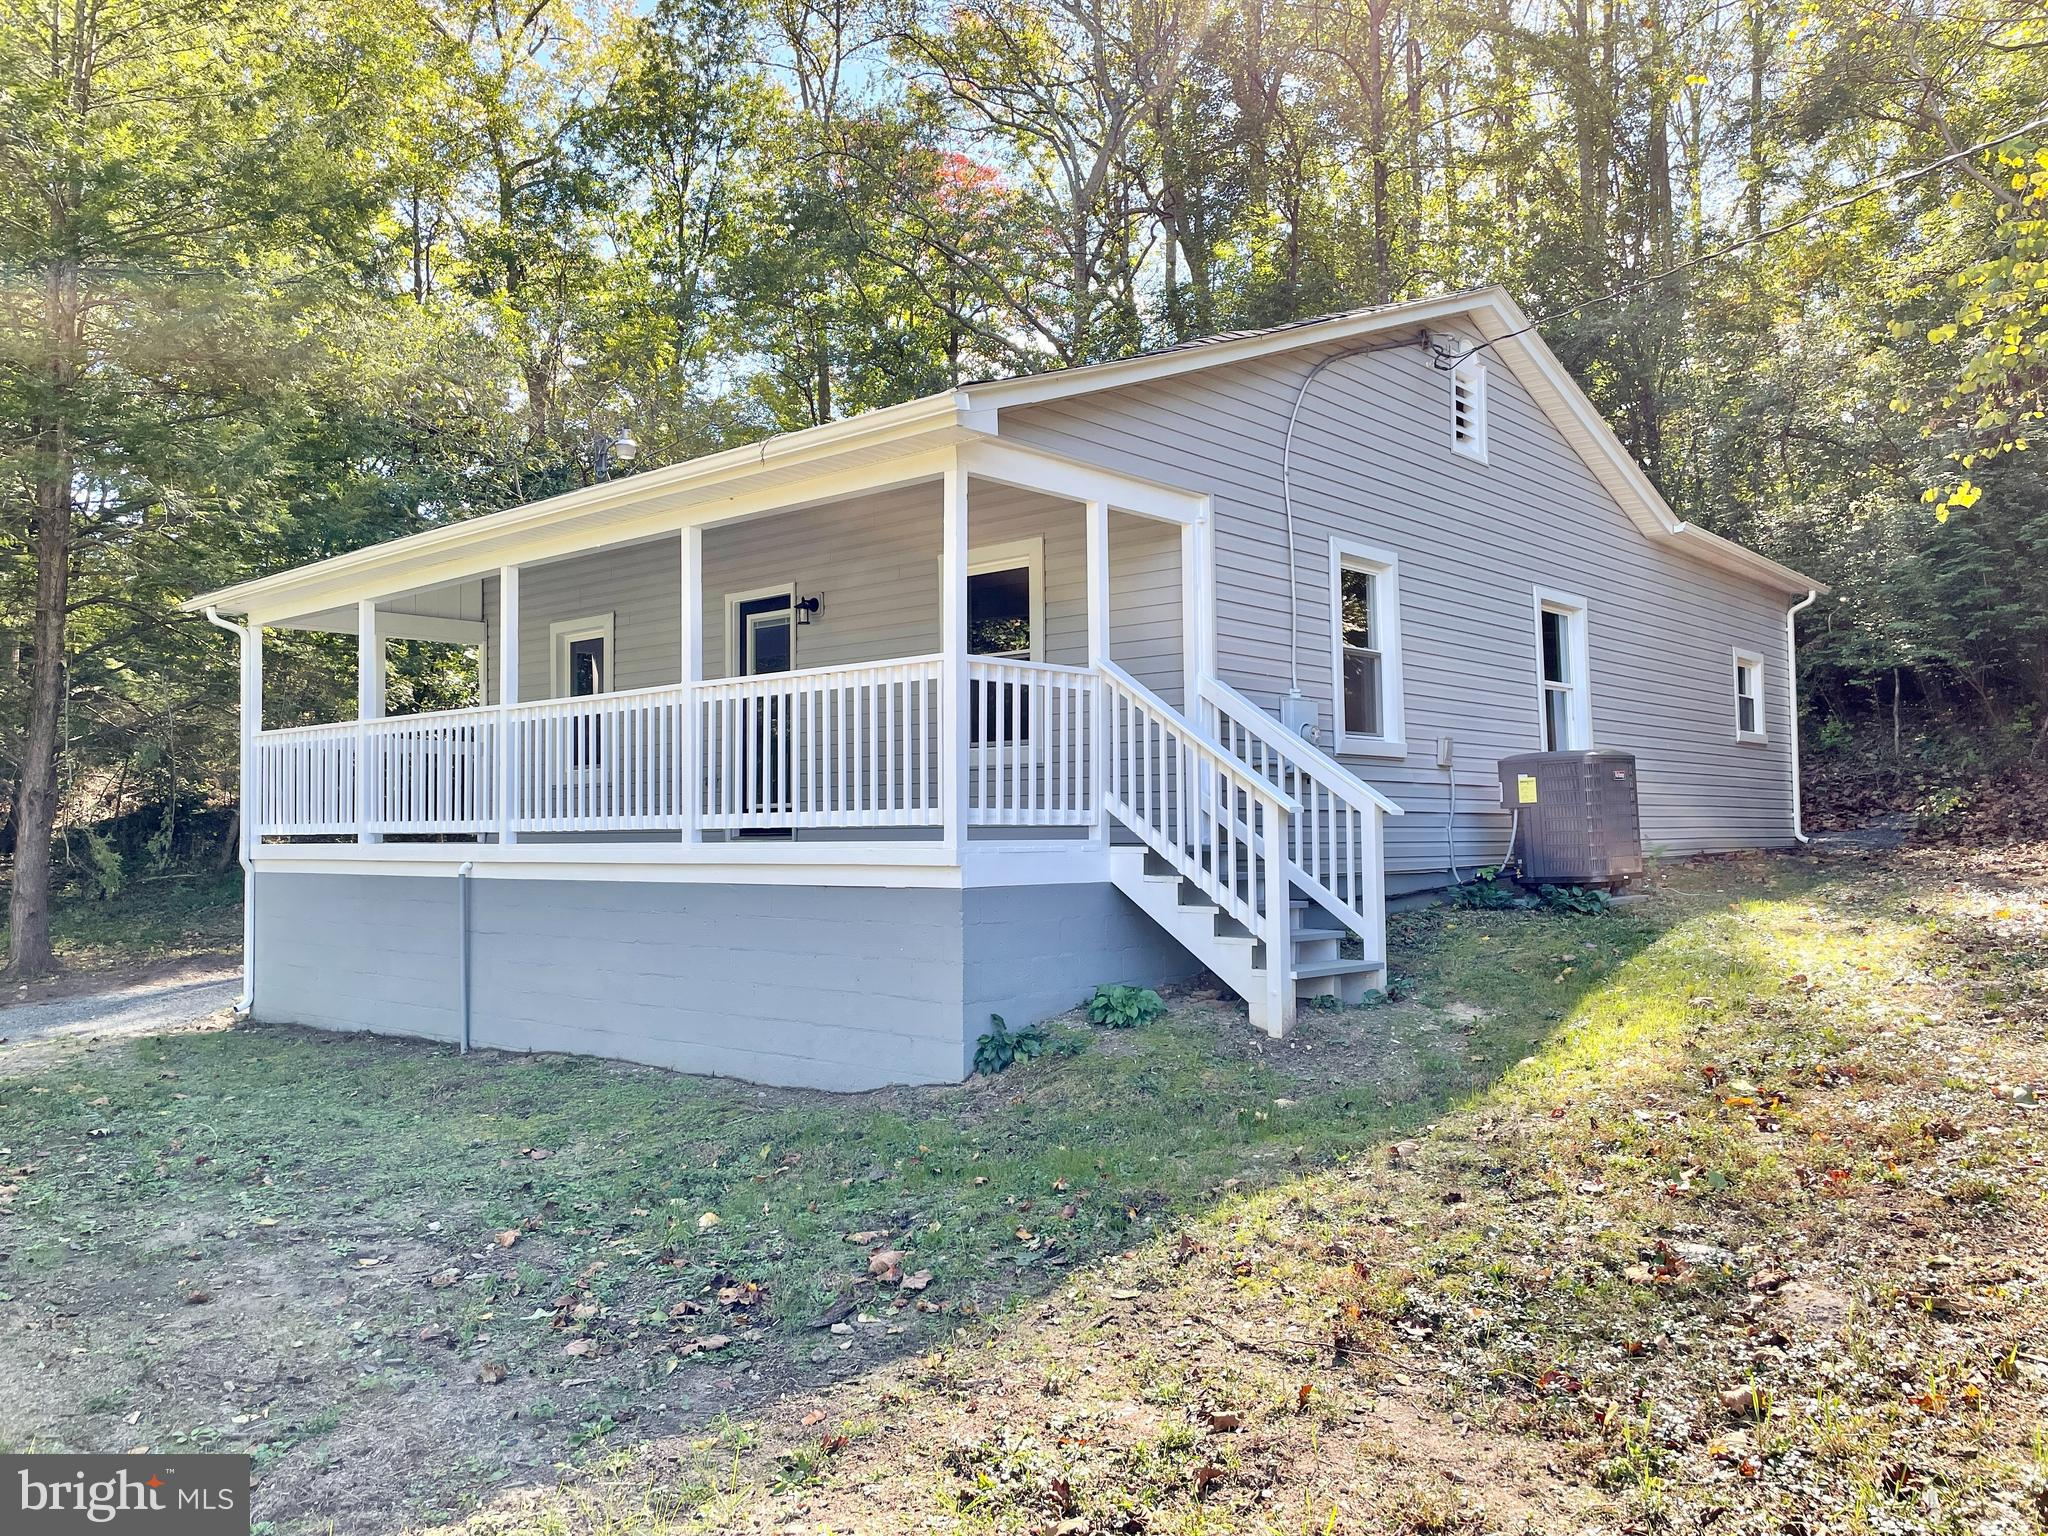 Charming Bungalow in North Stafford on 2.24 secluded acres. Country Living at its finest! This home